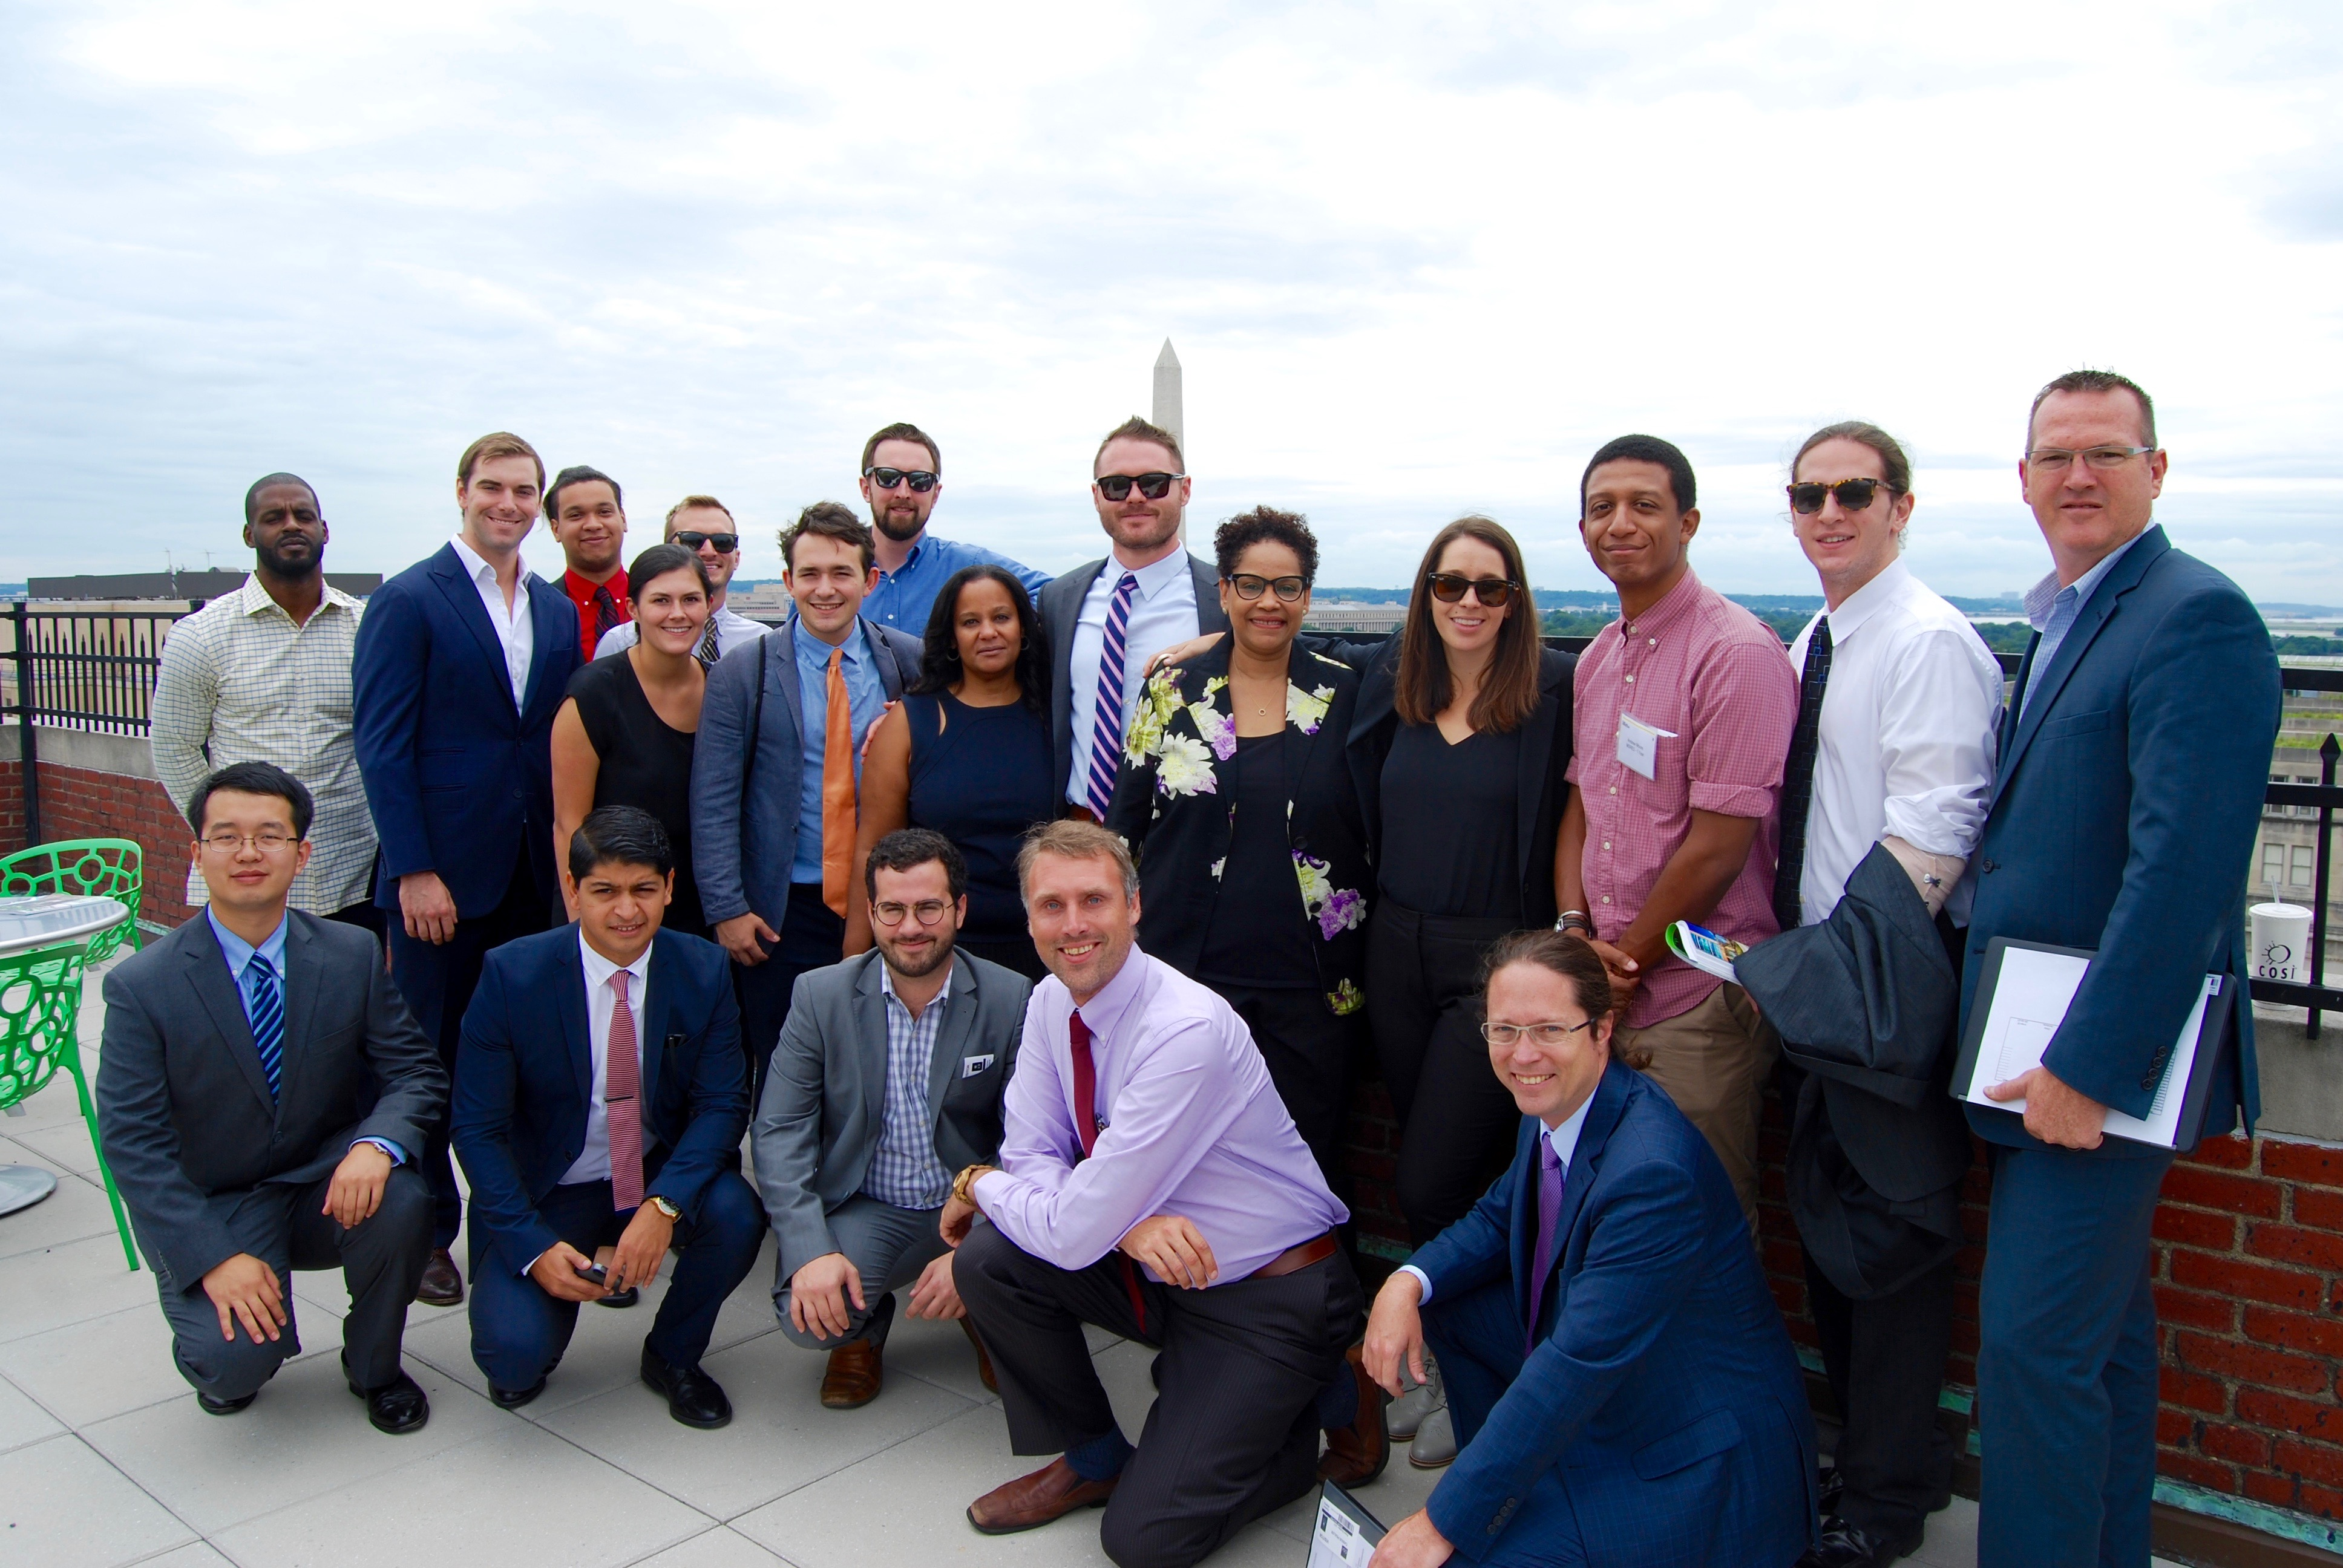 students and faculty on rooftop patio near Washington Monument